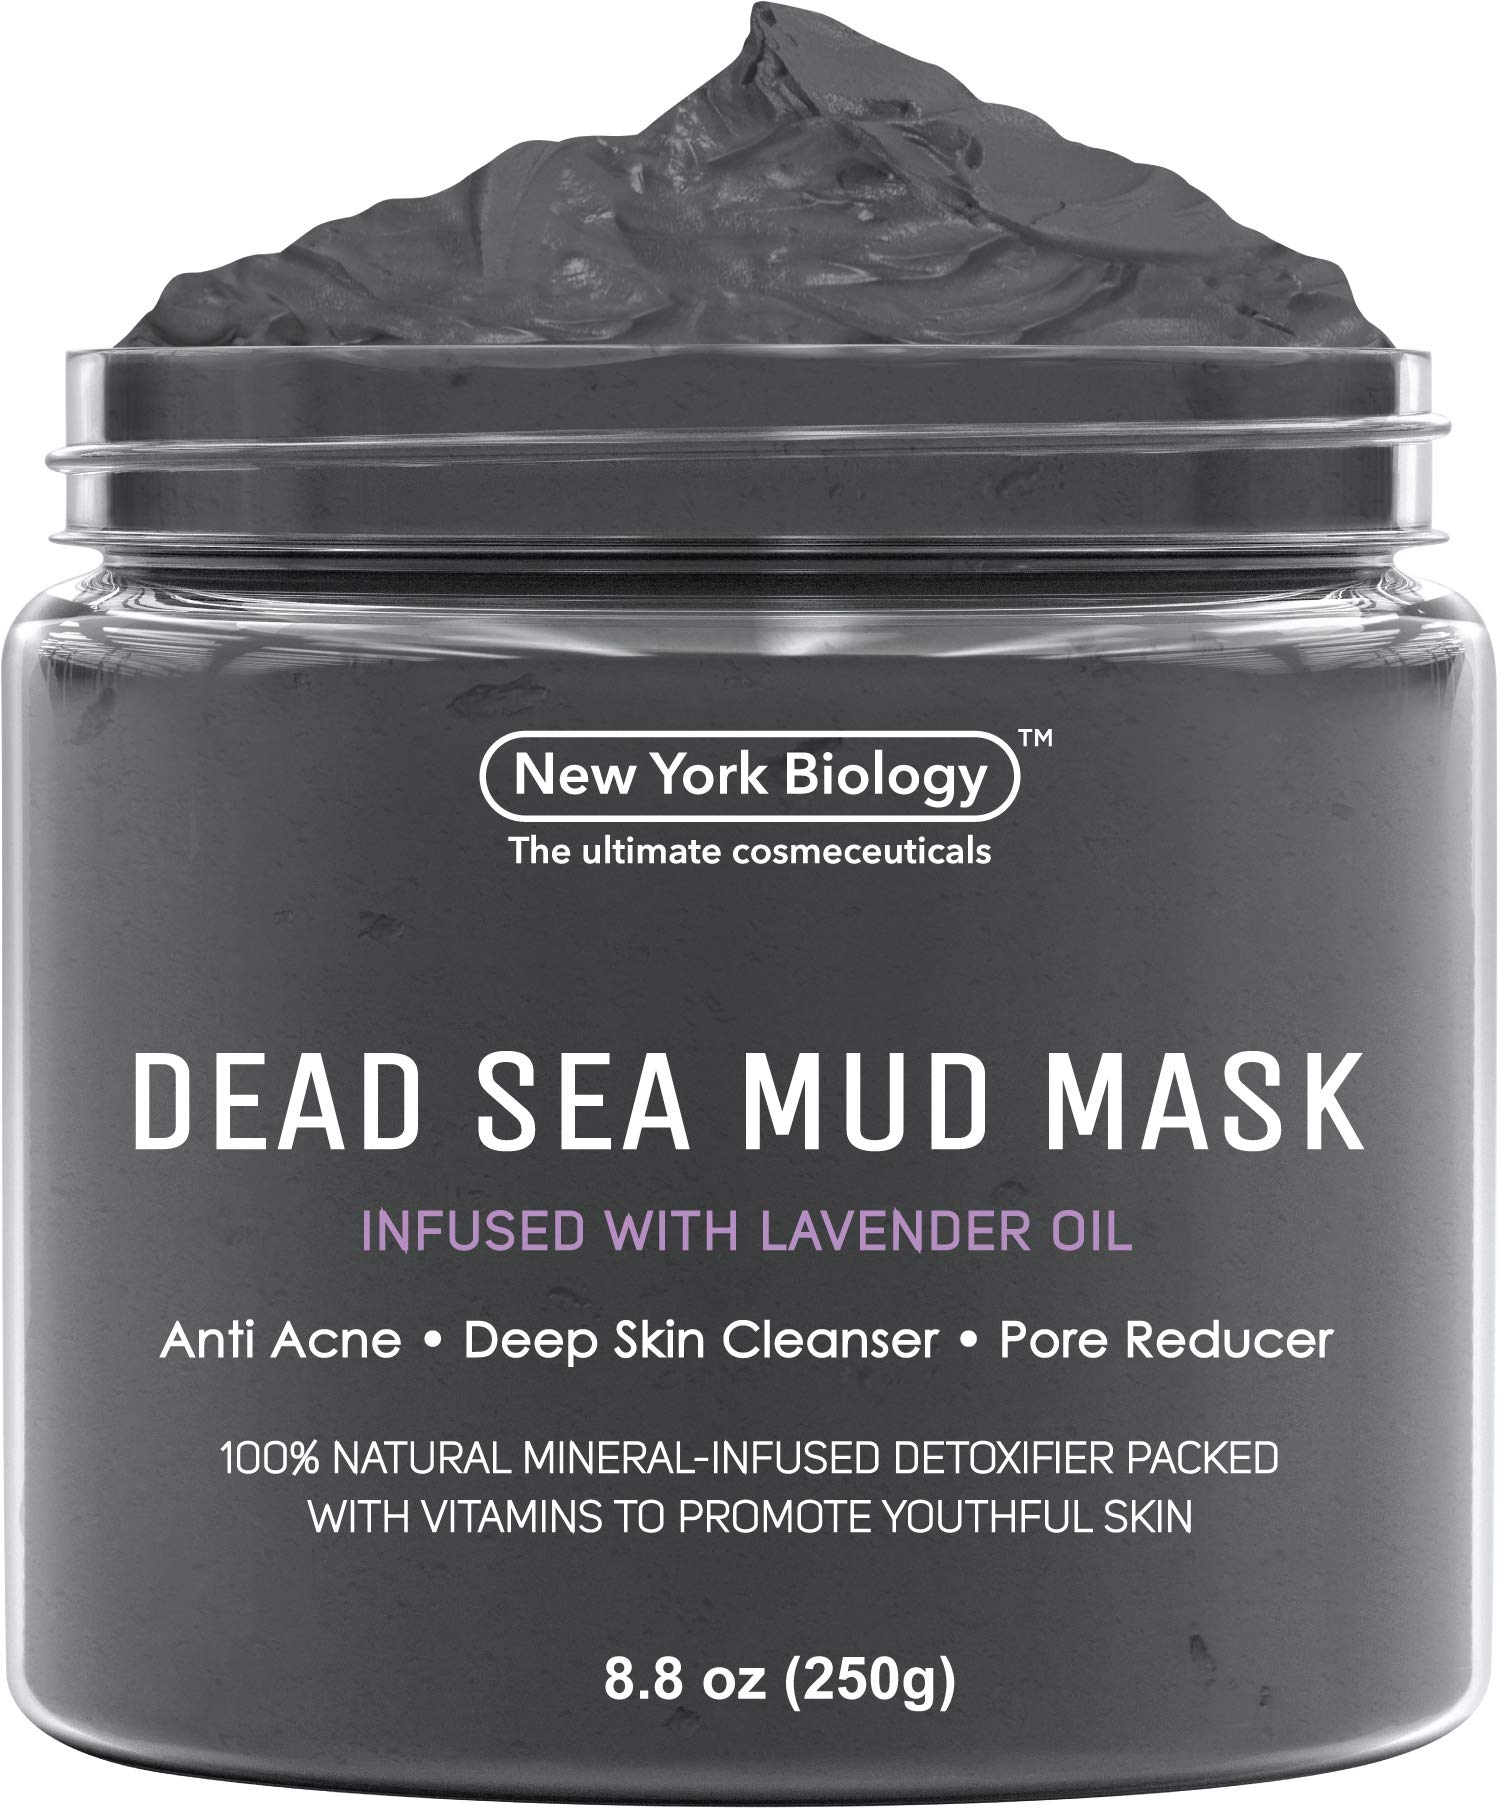 New York Biology Dead Sea Mud Mask Infused with Lavender - All Natural - Spa Quality Pore Reducer to Help with Acne, Blackheads and Oily Skin Tightens Skin for A Healthier Complexion - 8.8 oz by New York Biology